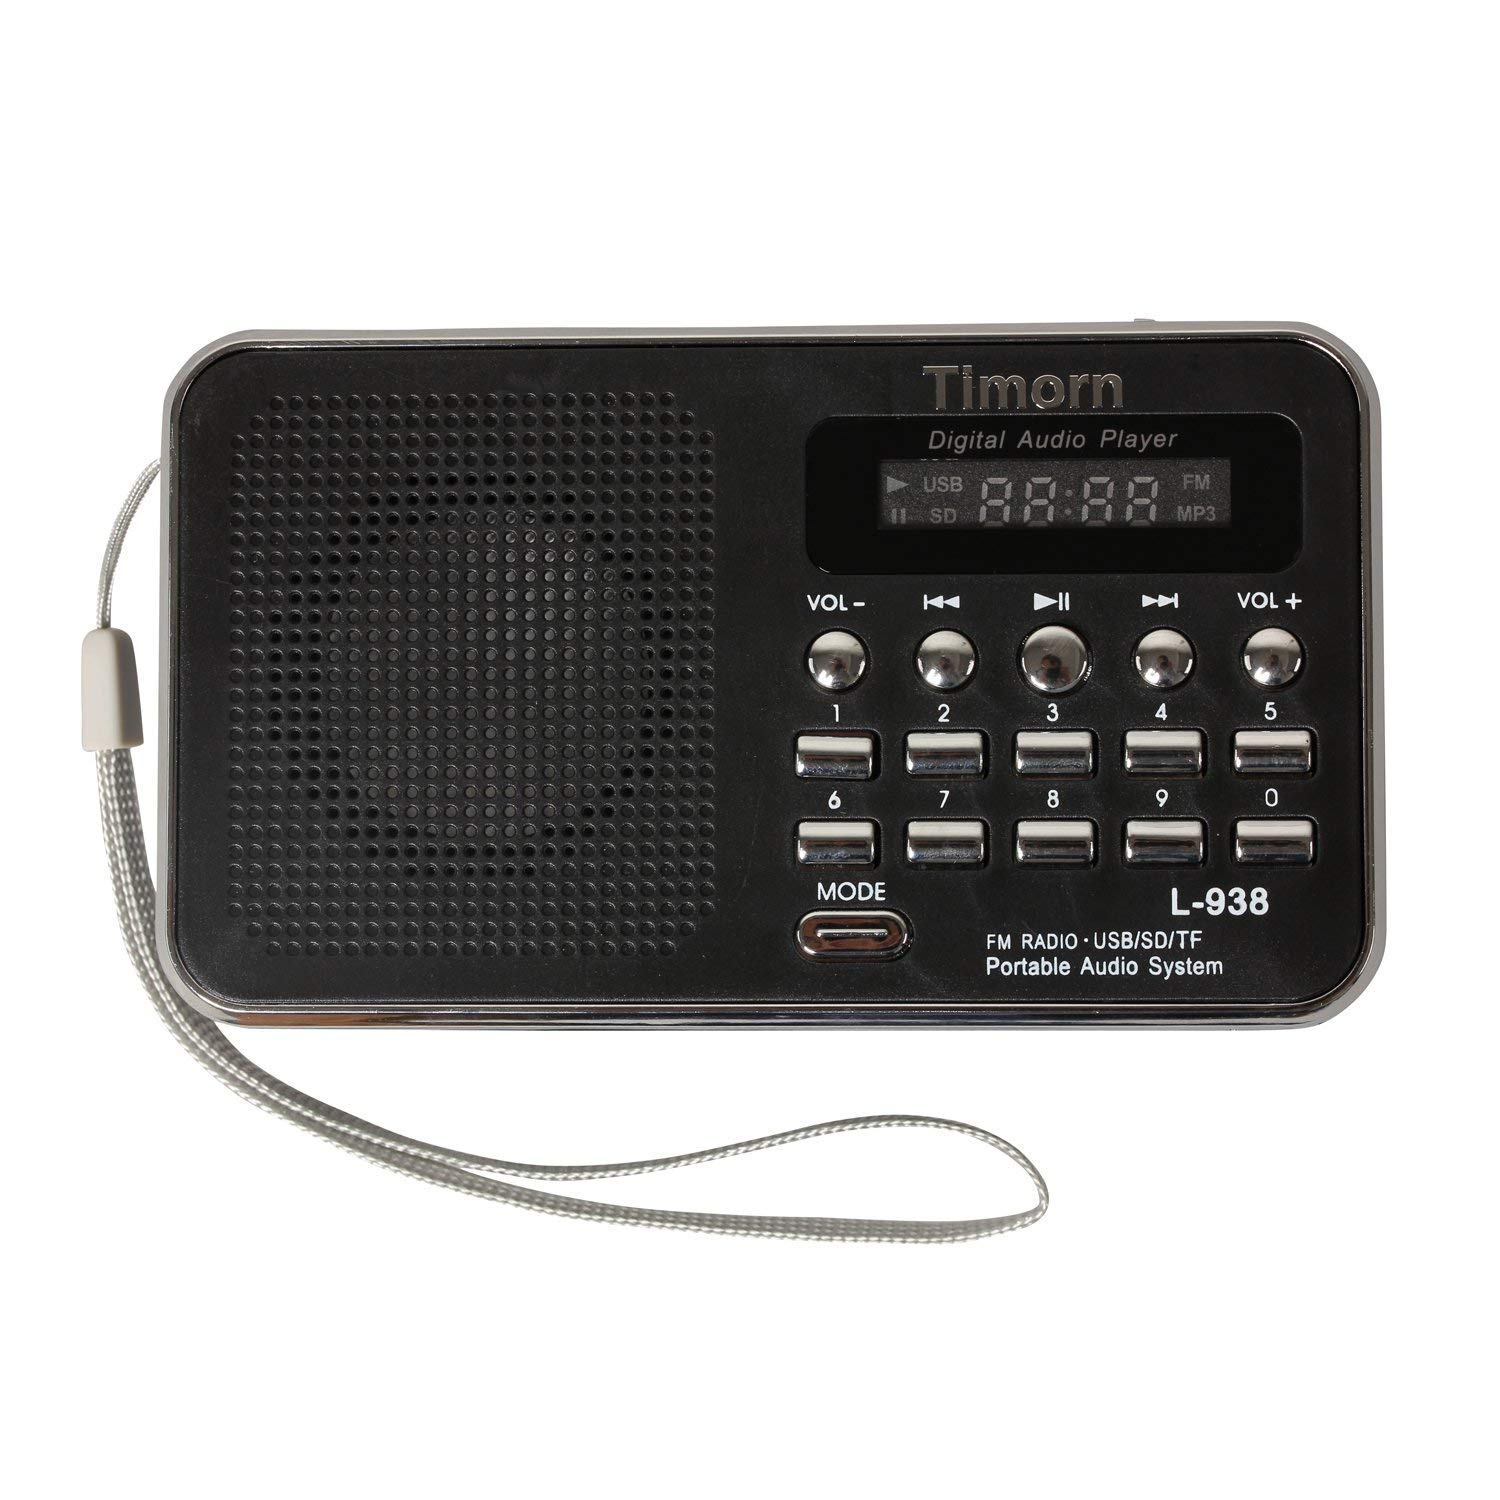 Emergency Radio Portable, Timorn Small Radio Digital Radio Mini Music Player Supports TF Card/USB/SD/MP3 Format/FM Radio Function (Black) T68